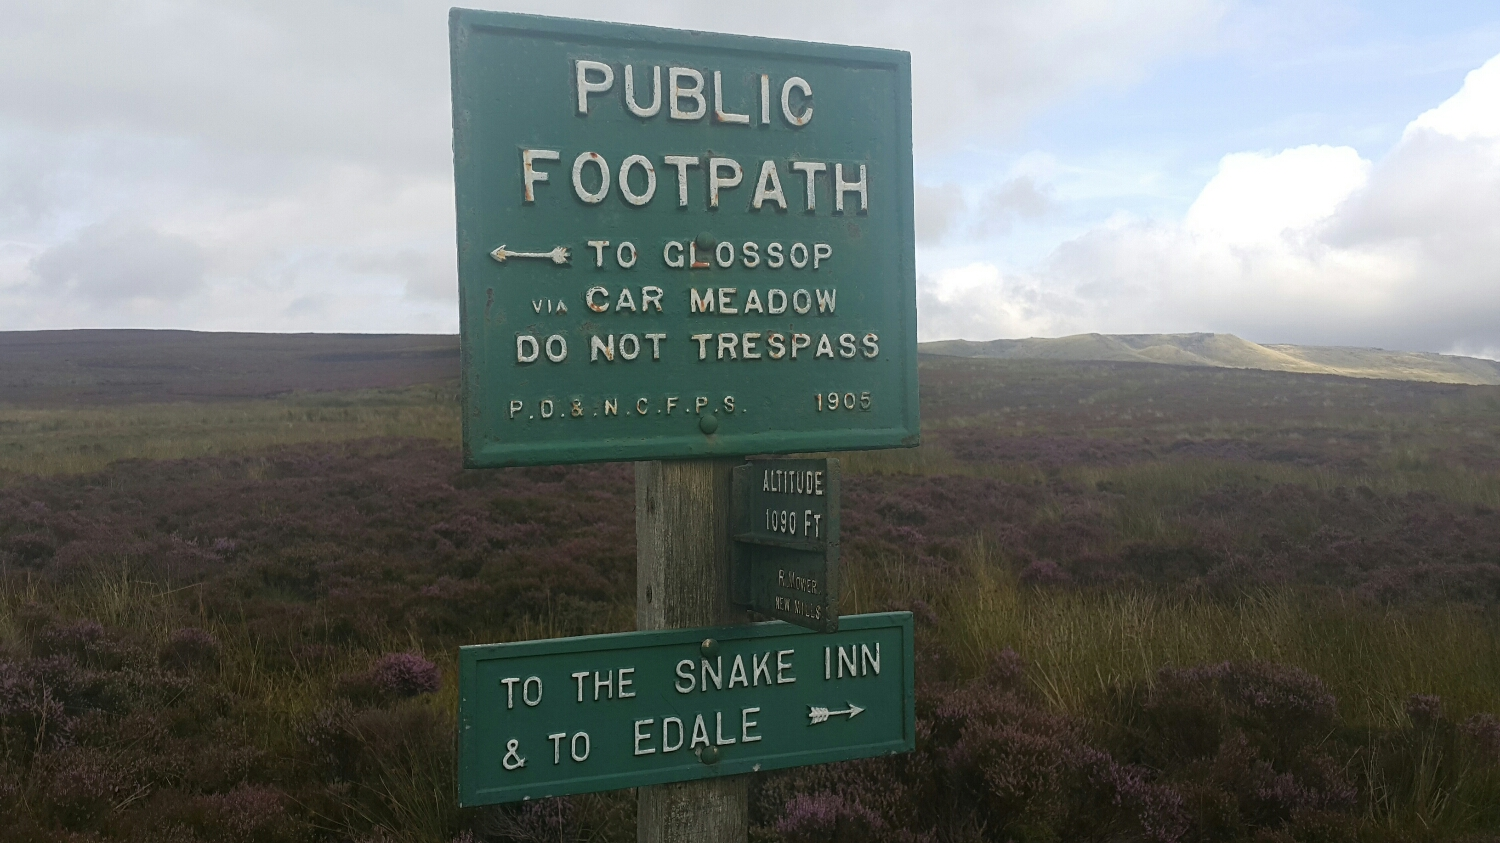 Getting used to seeing these signs about. If you are going exploring you still need to take a map, as it would be easy to get your self lost.